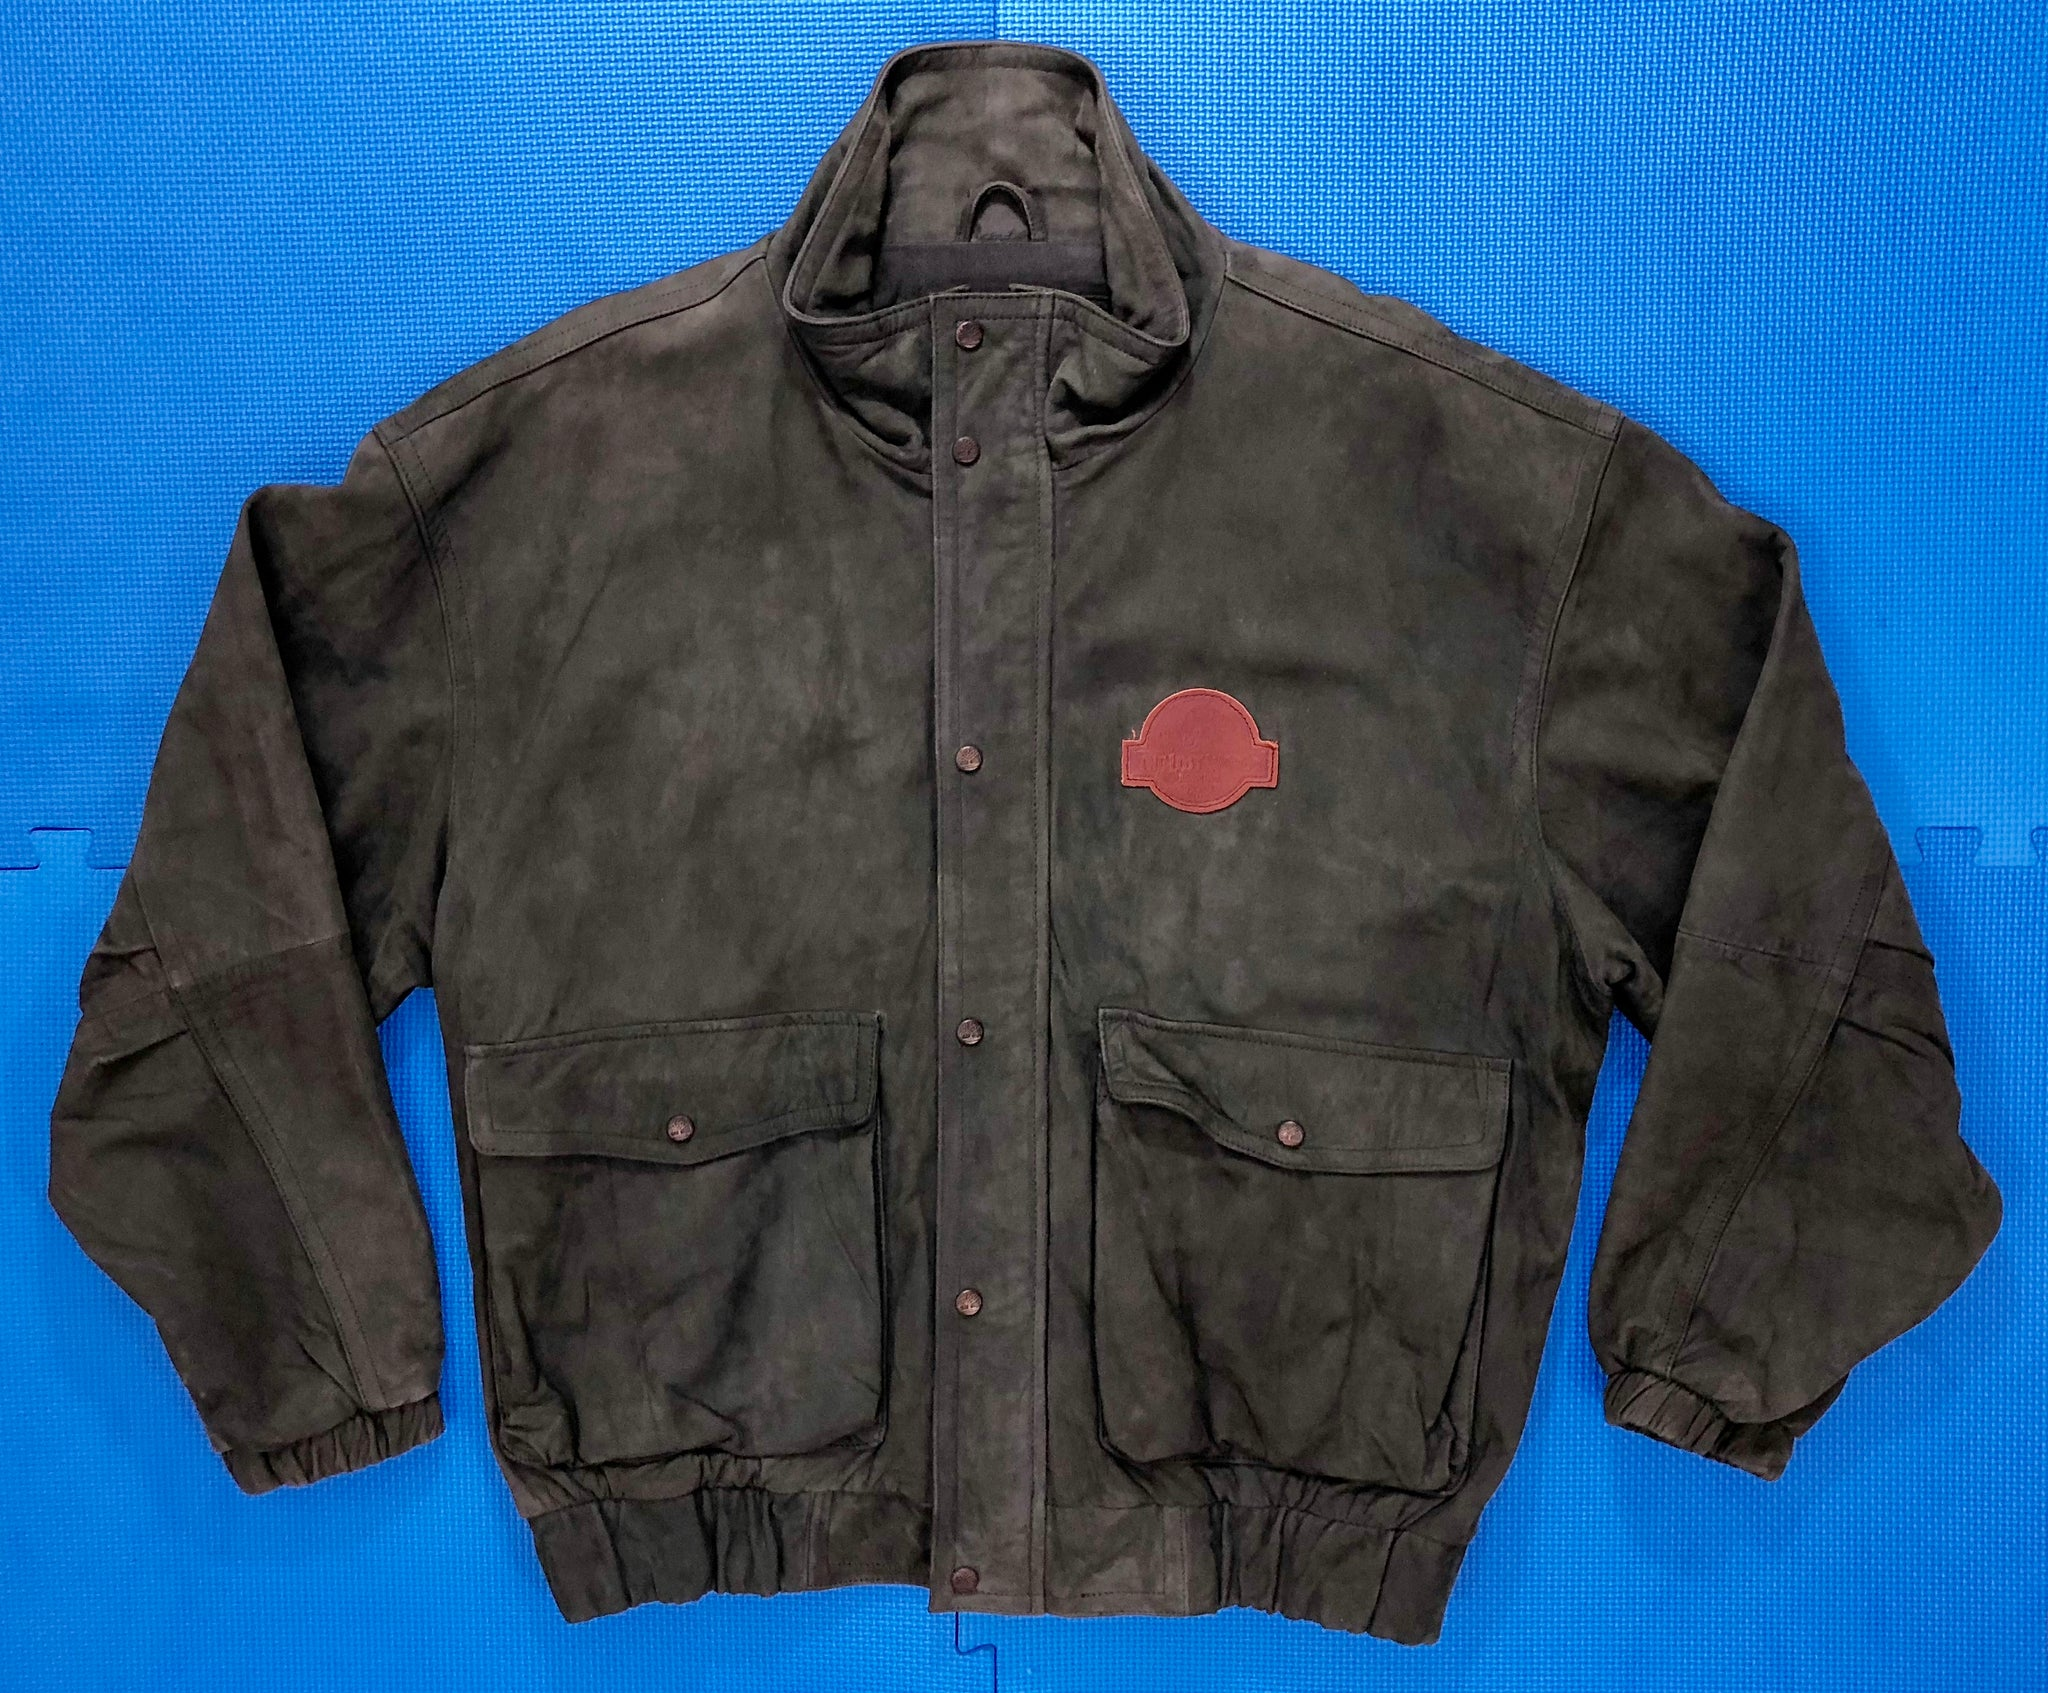 Vintage The Lost World: Jurassic Park Cast & Crew Jacket by